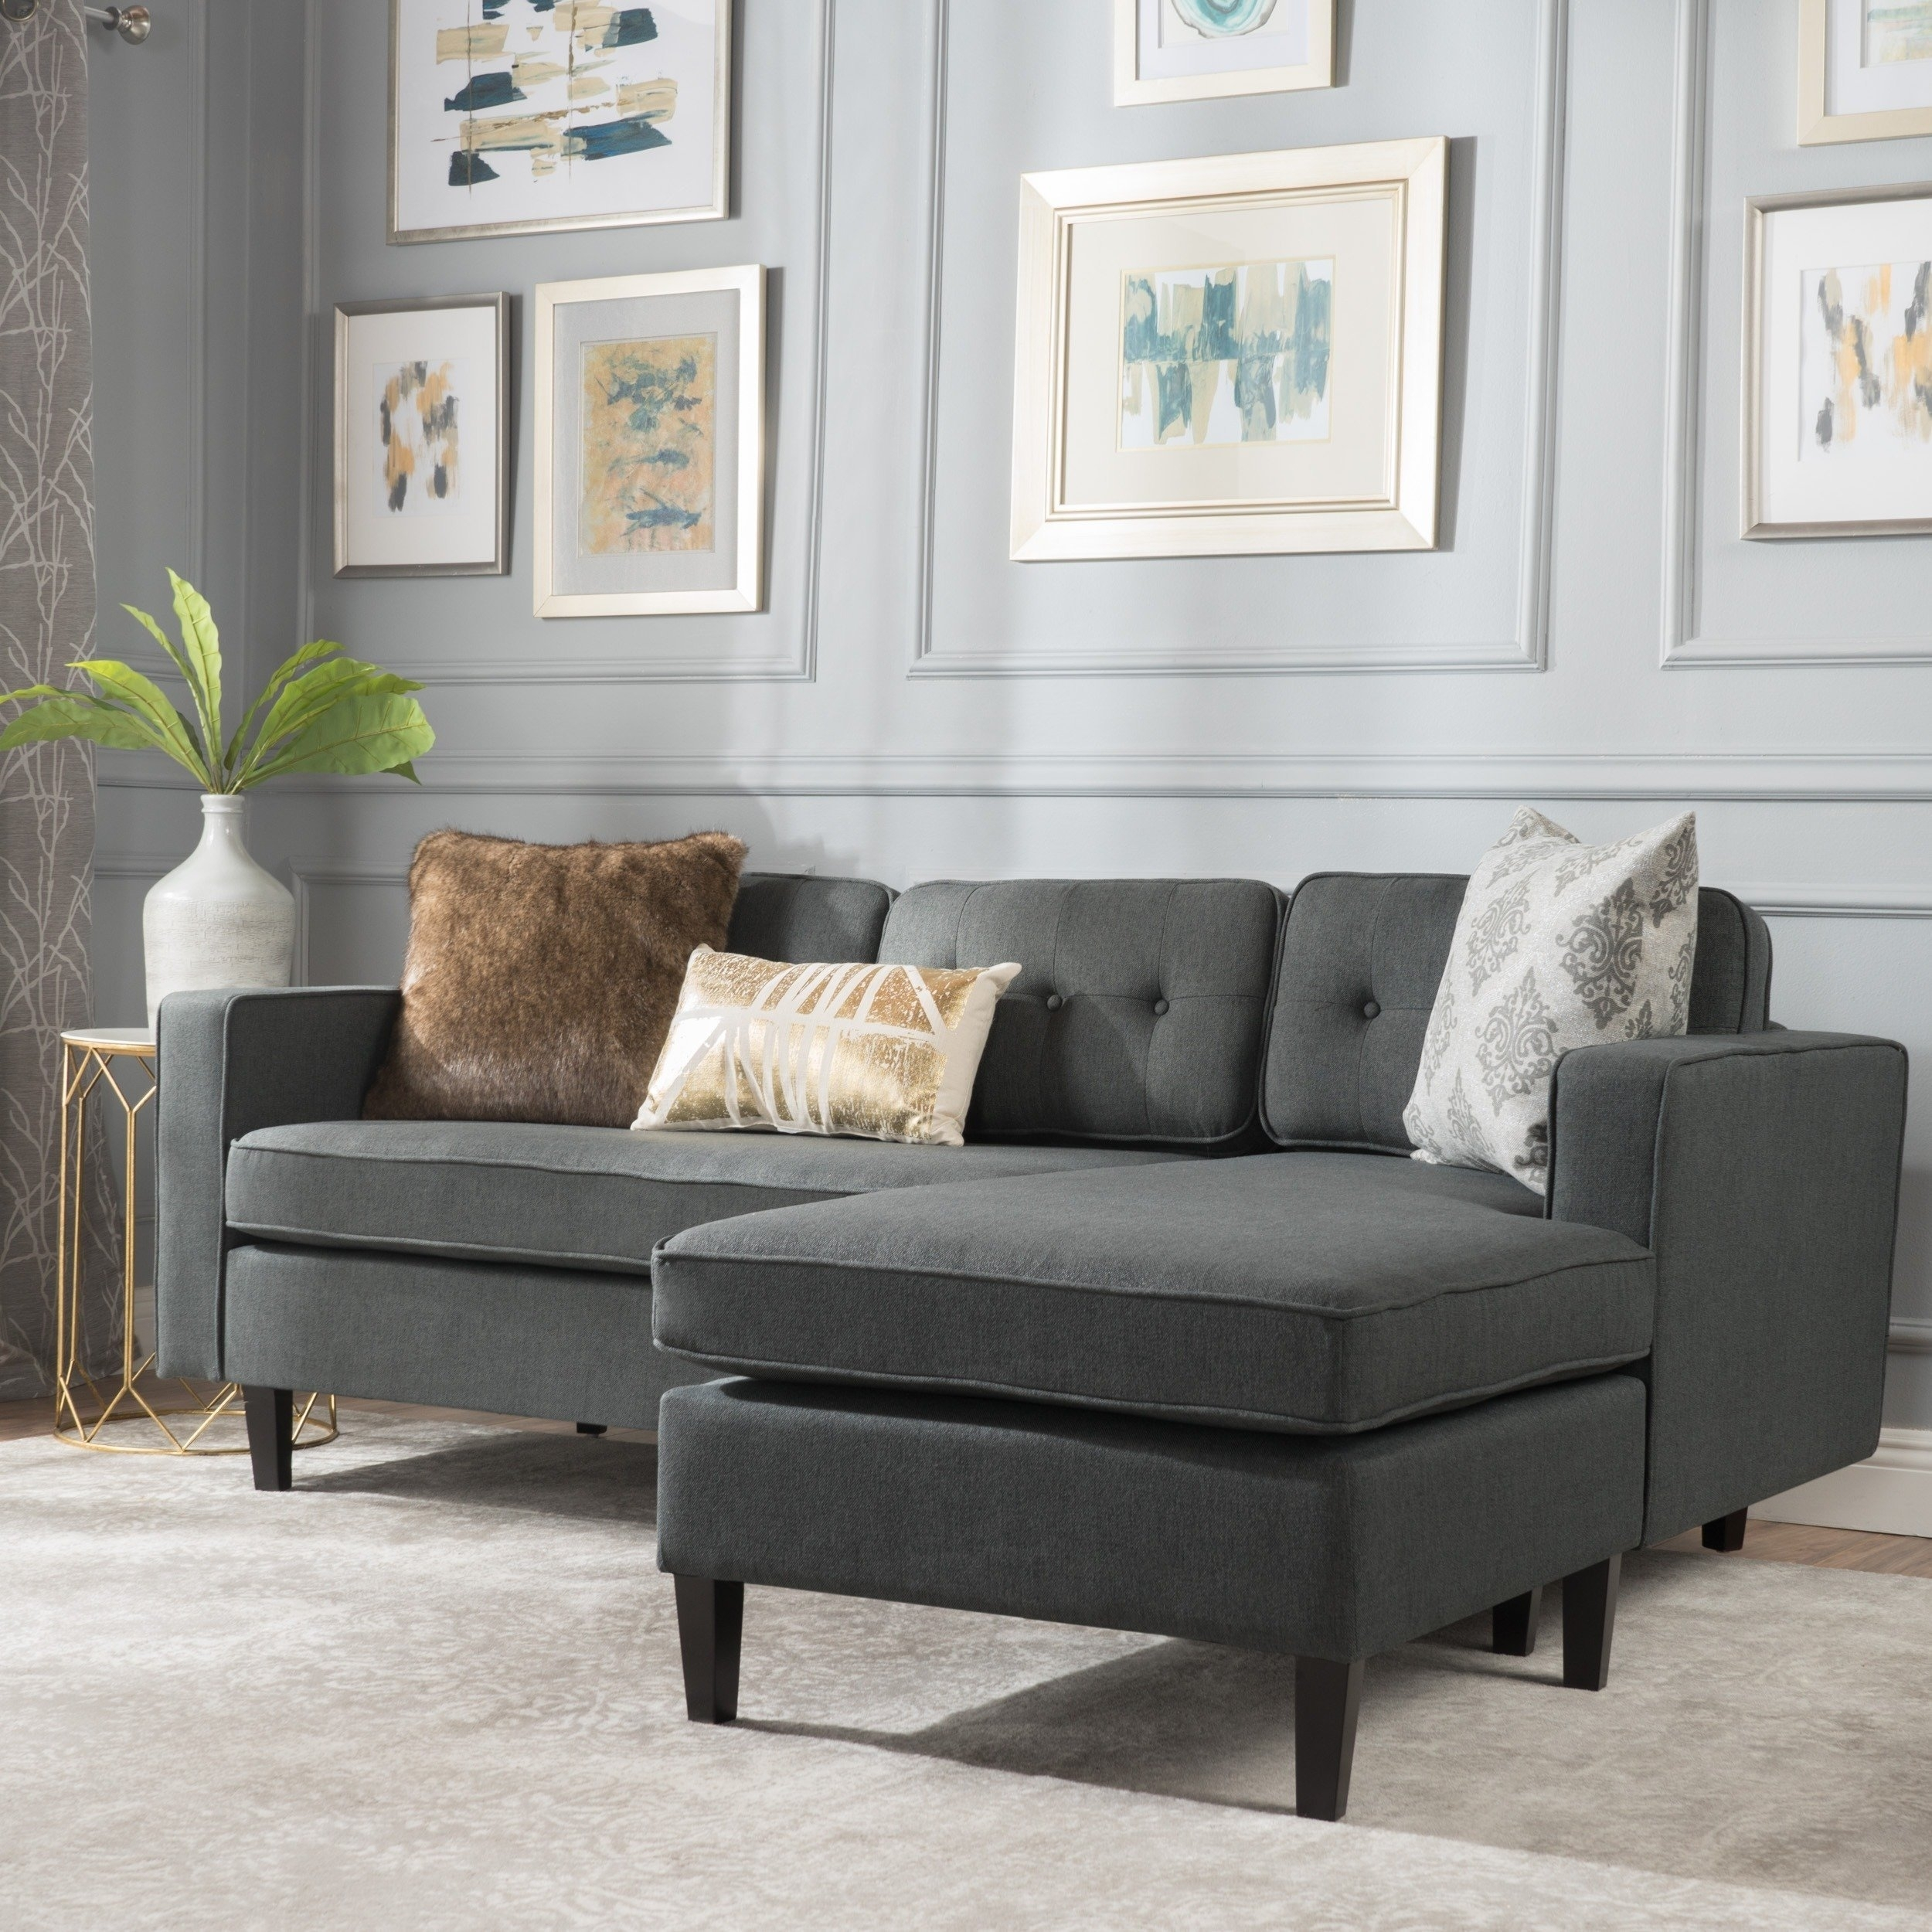 Sofa Chaise | Ladale Sofa Chaise Ashley Furniture Homestore Couches In Taren Reversible Sofa/chaise Sleeper Sectionals With Storage Ottoman (Image 21 of 25)